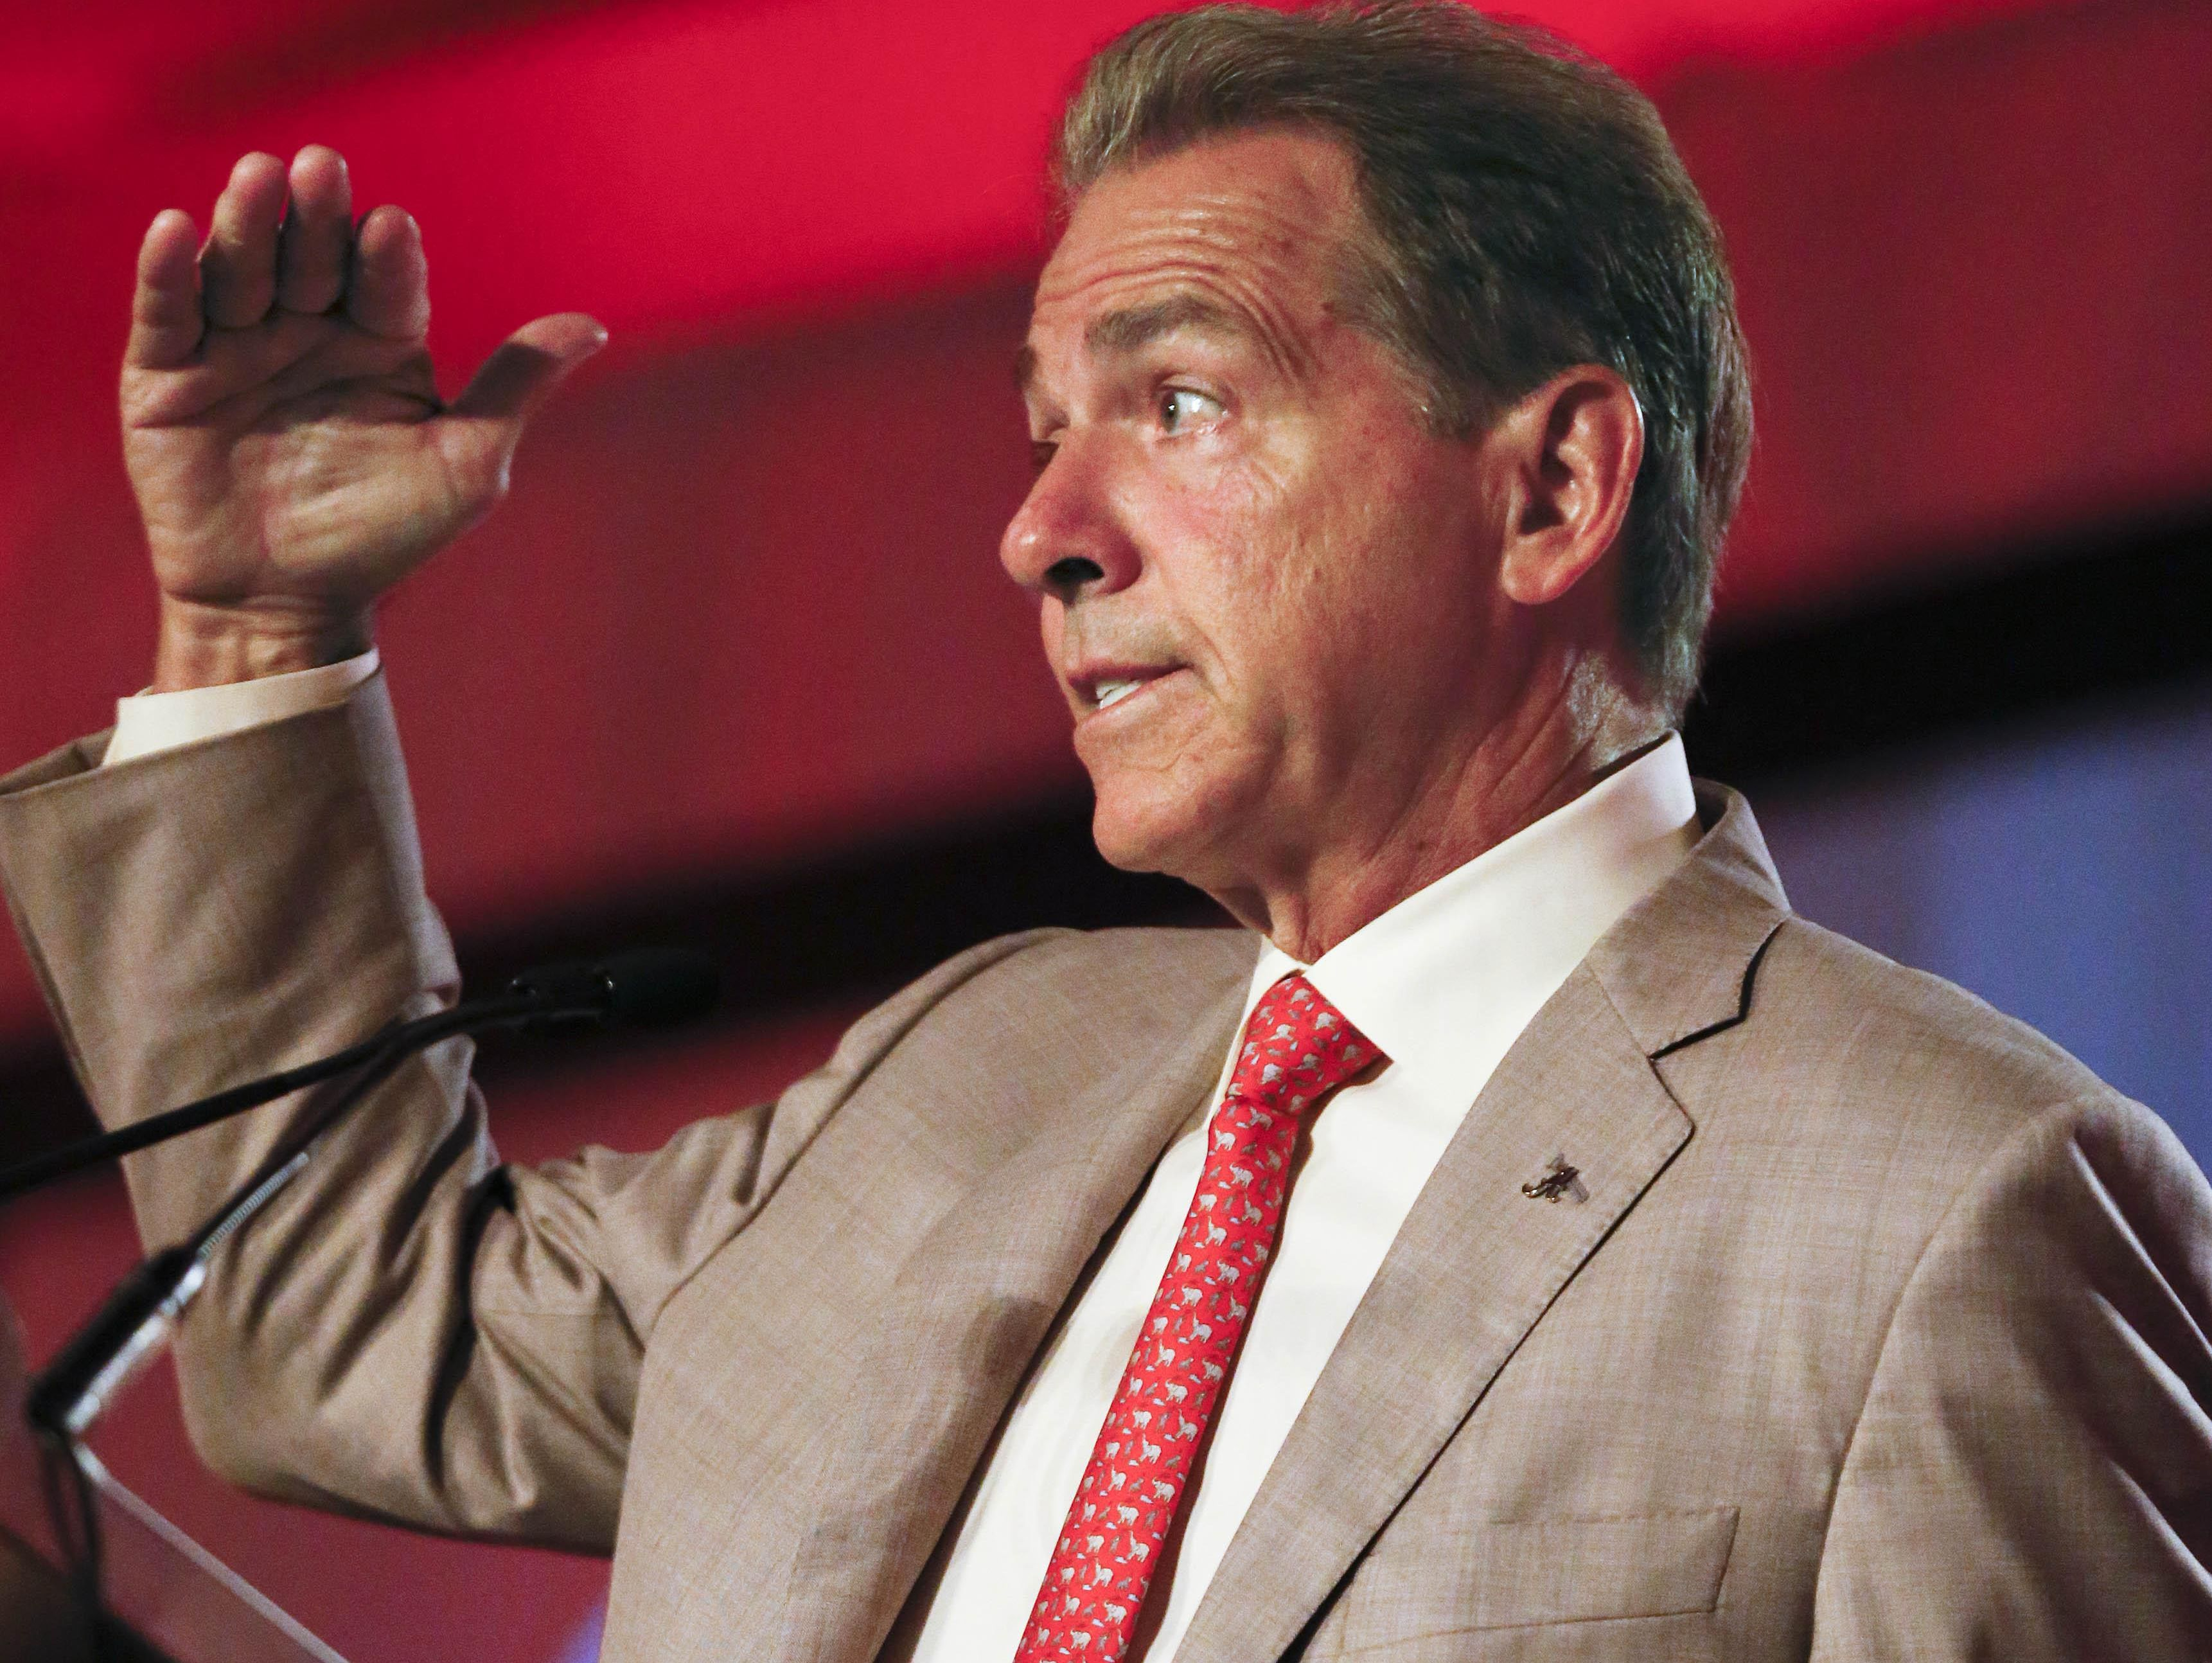 Alabama coach Nick Saban speaks to the media at the Southeastern Conference NCAA college football media days on Wednesday in Hoover, Ala.